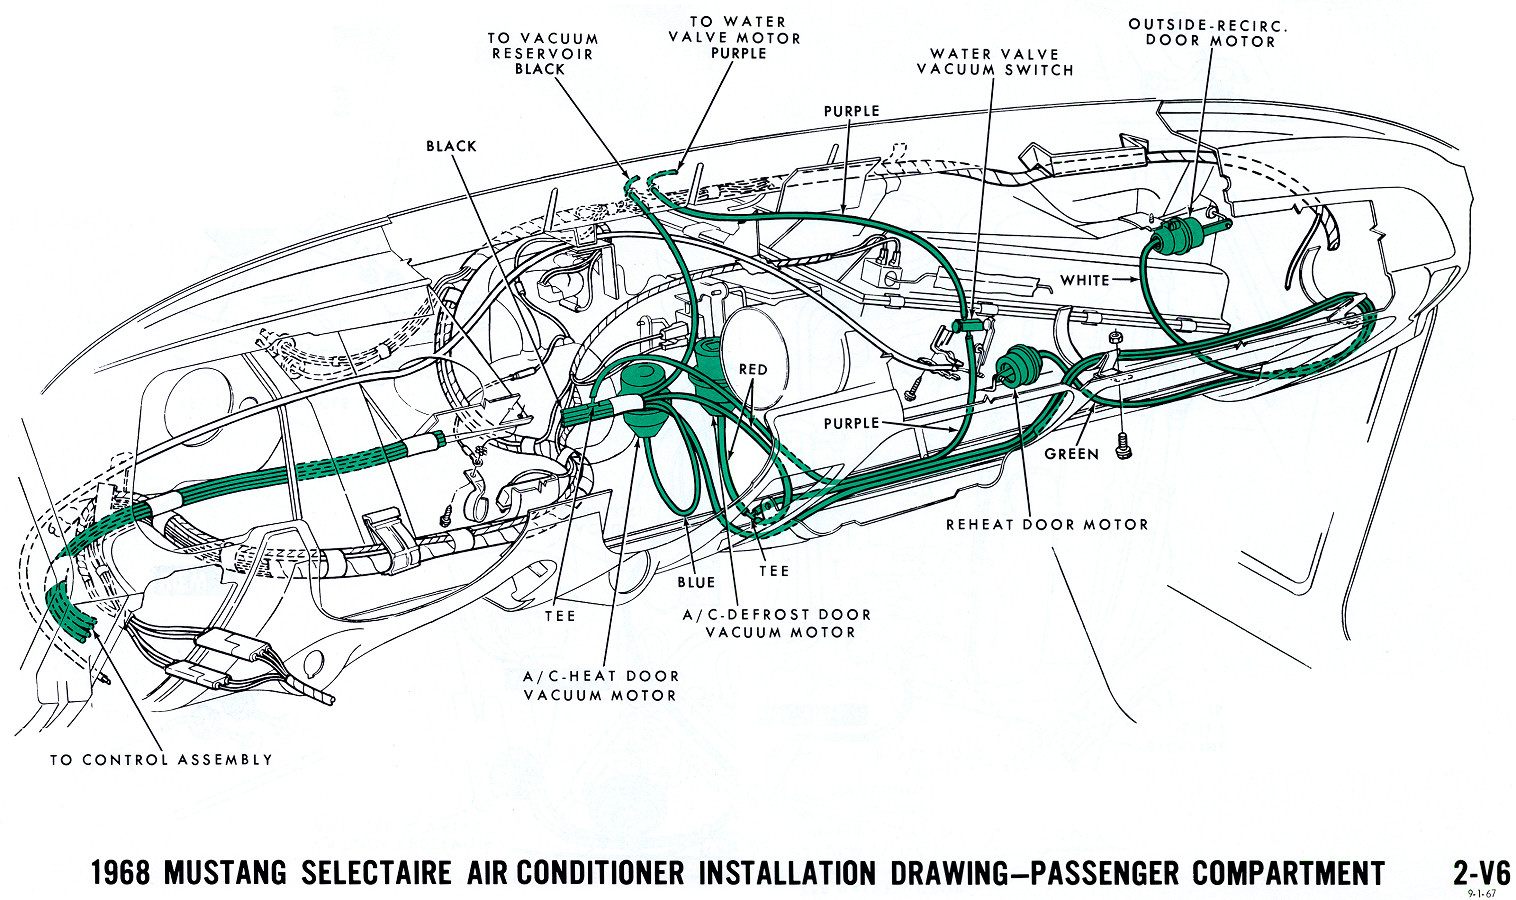 1968 Mustang Wiring Diagrams And Vacuum Schematics Average Joe Ac Colors Diagram Air Conditioning Interior